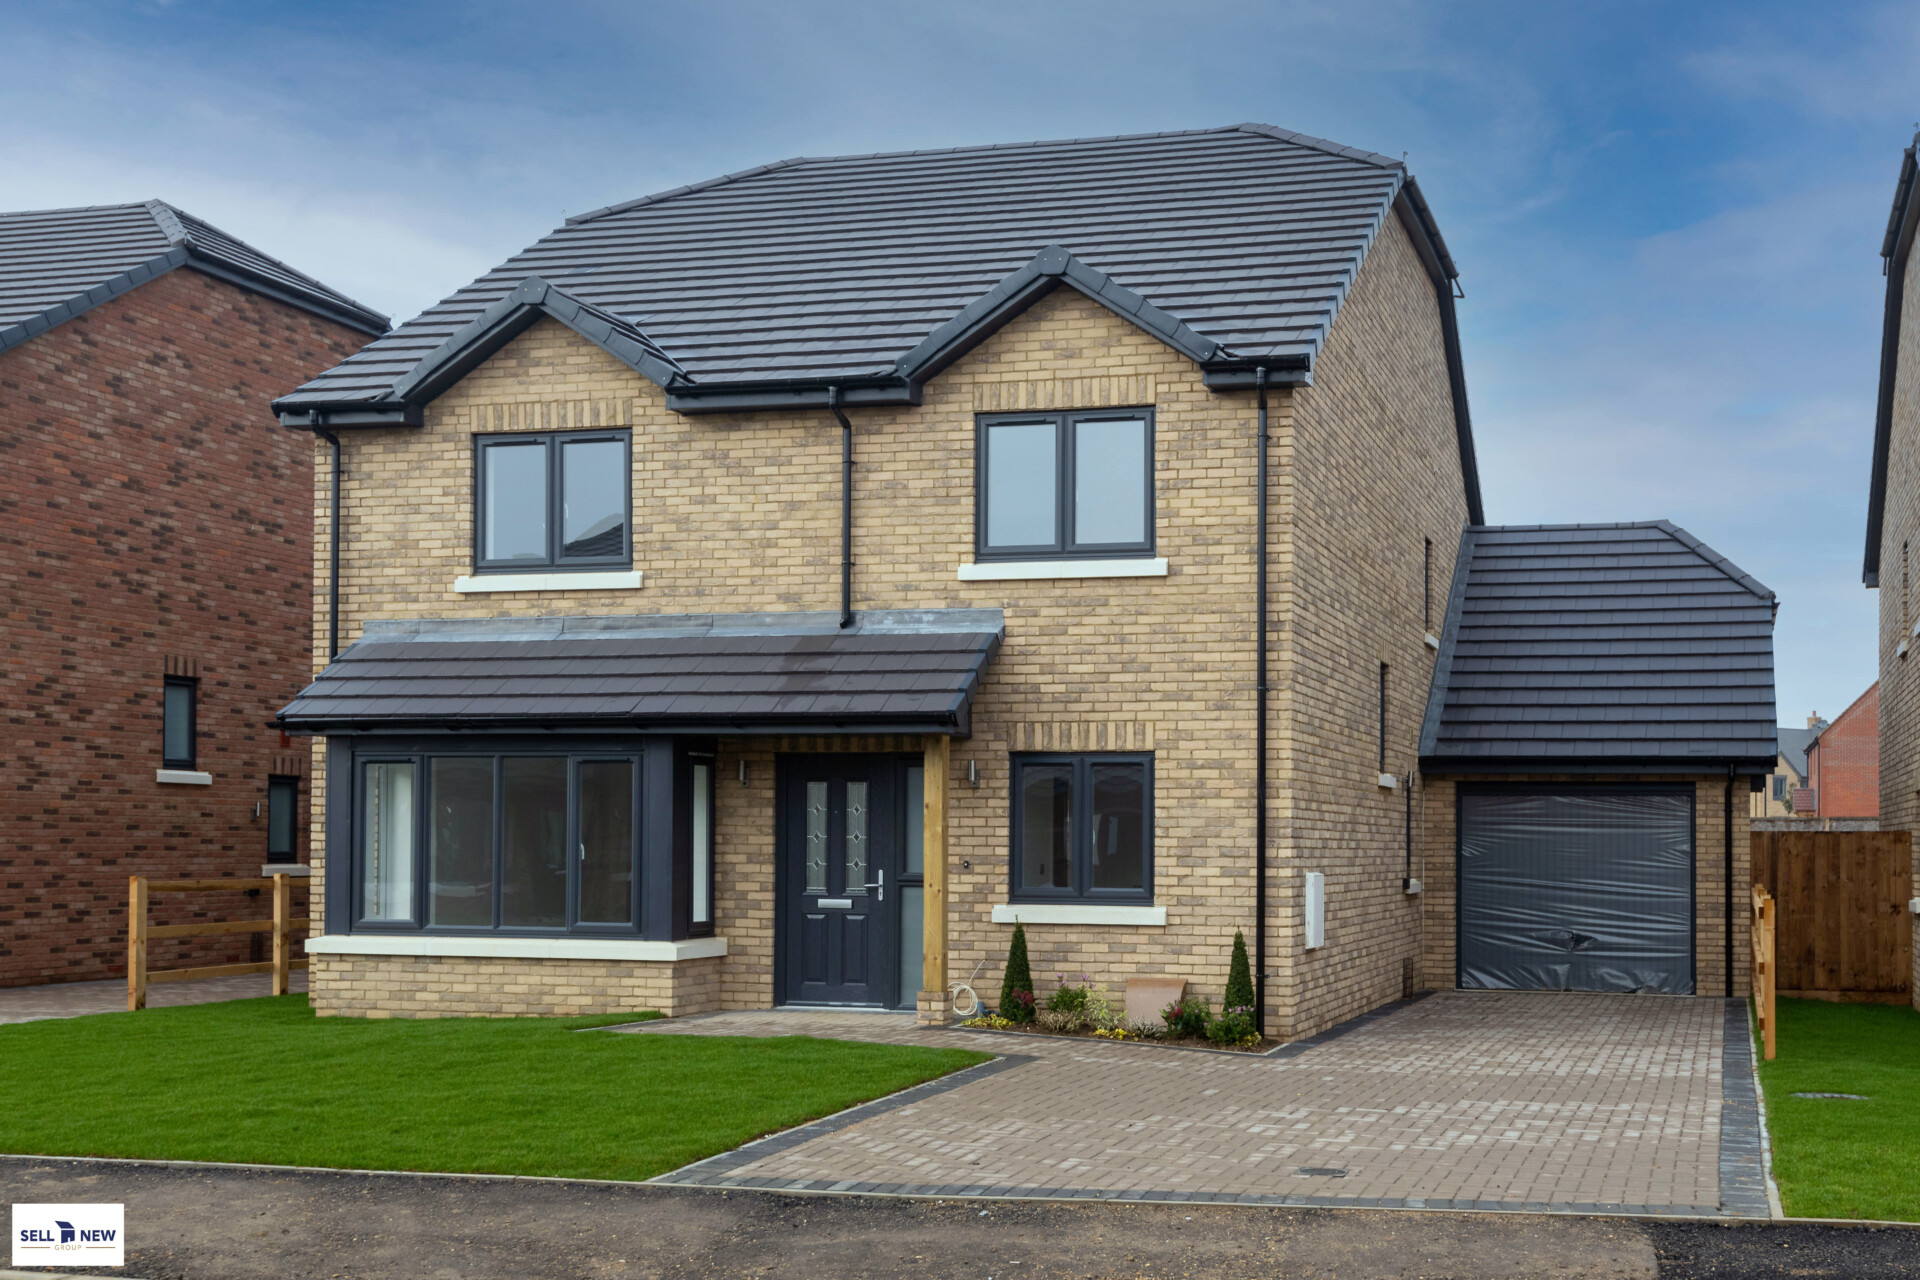 Plot 5, Earl Close, Hitchin Lane, Clifton – JUST RELEASED, FOUR BEDROOM DETACHED FAMILY HOME!